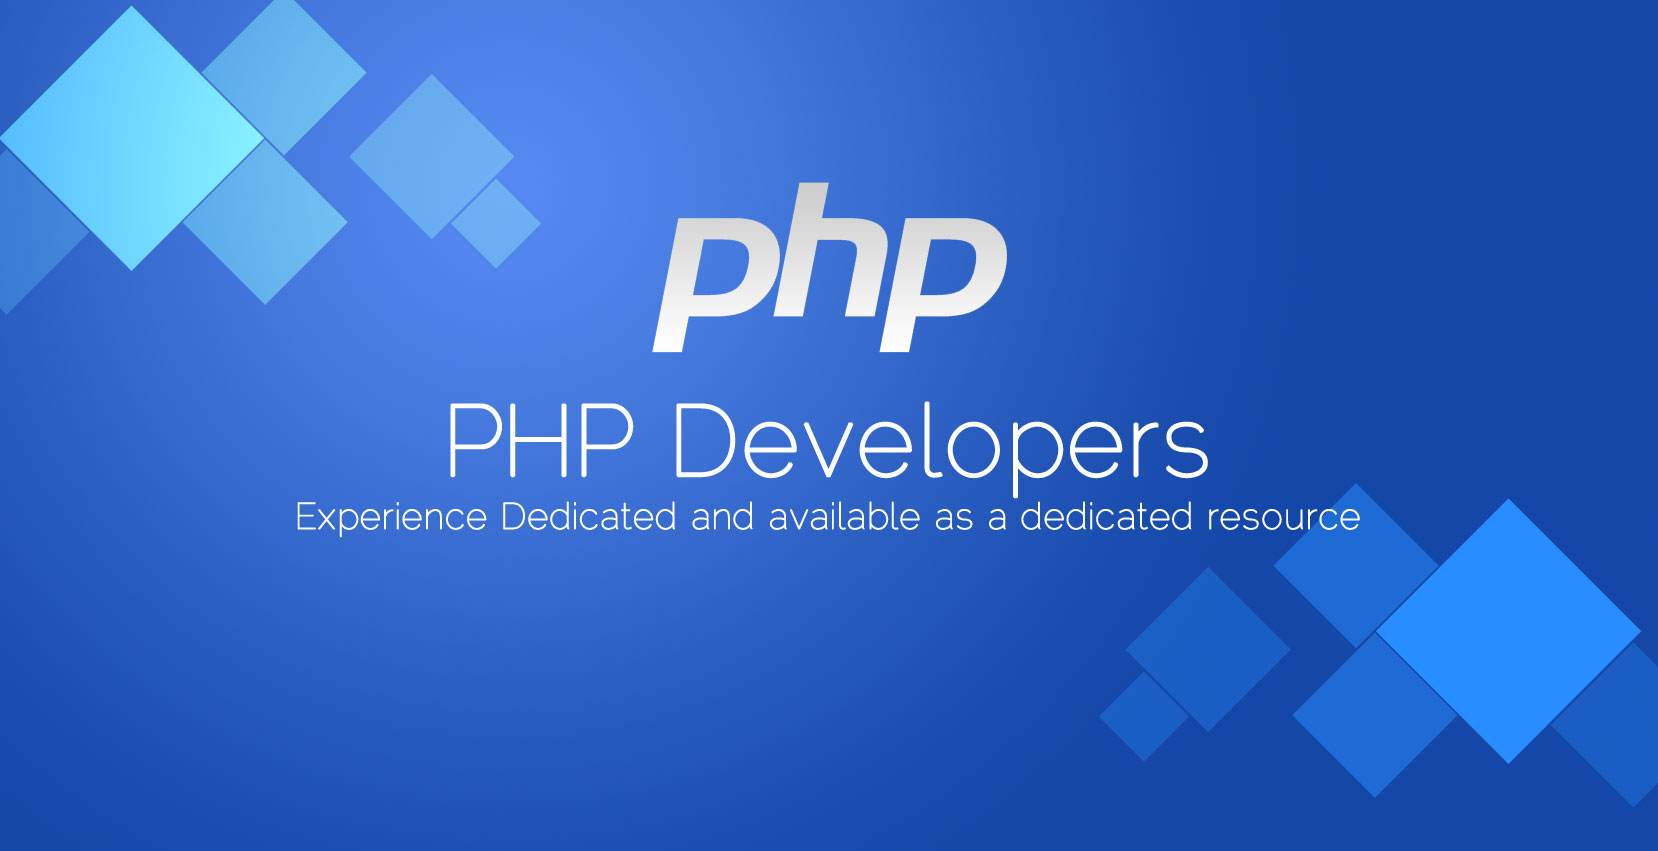 joomlaties-aboutus-php-dedicated